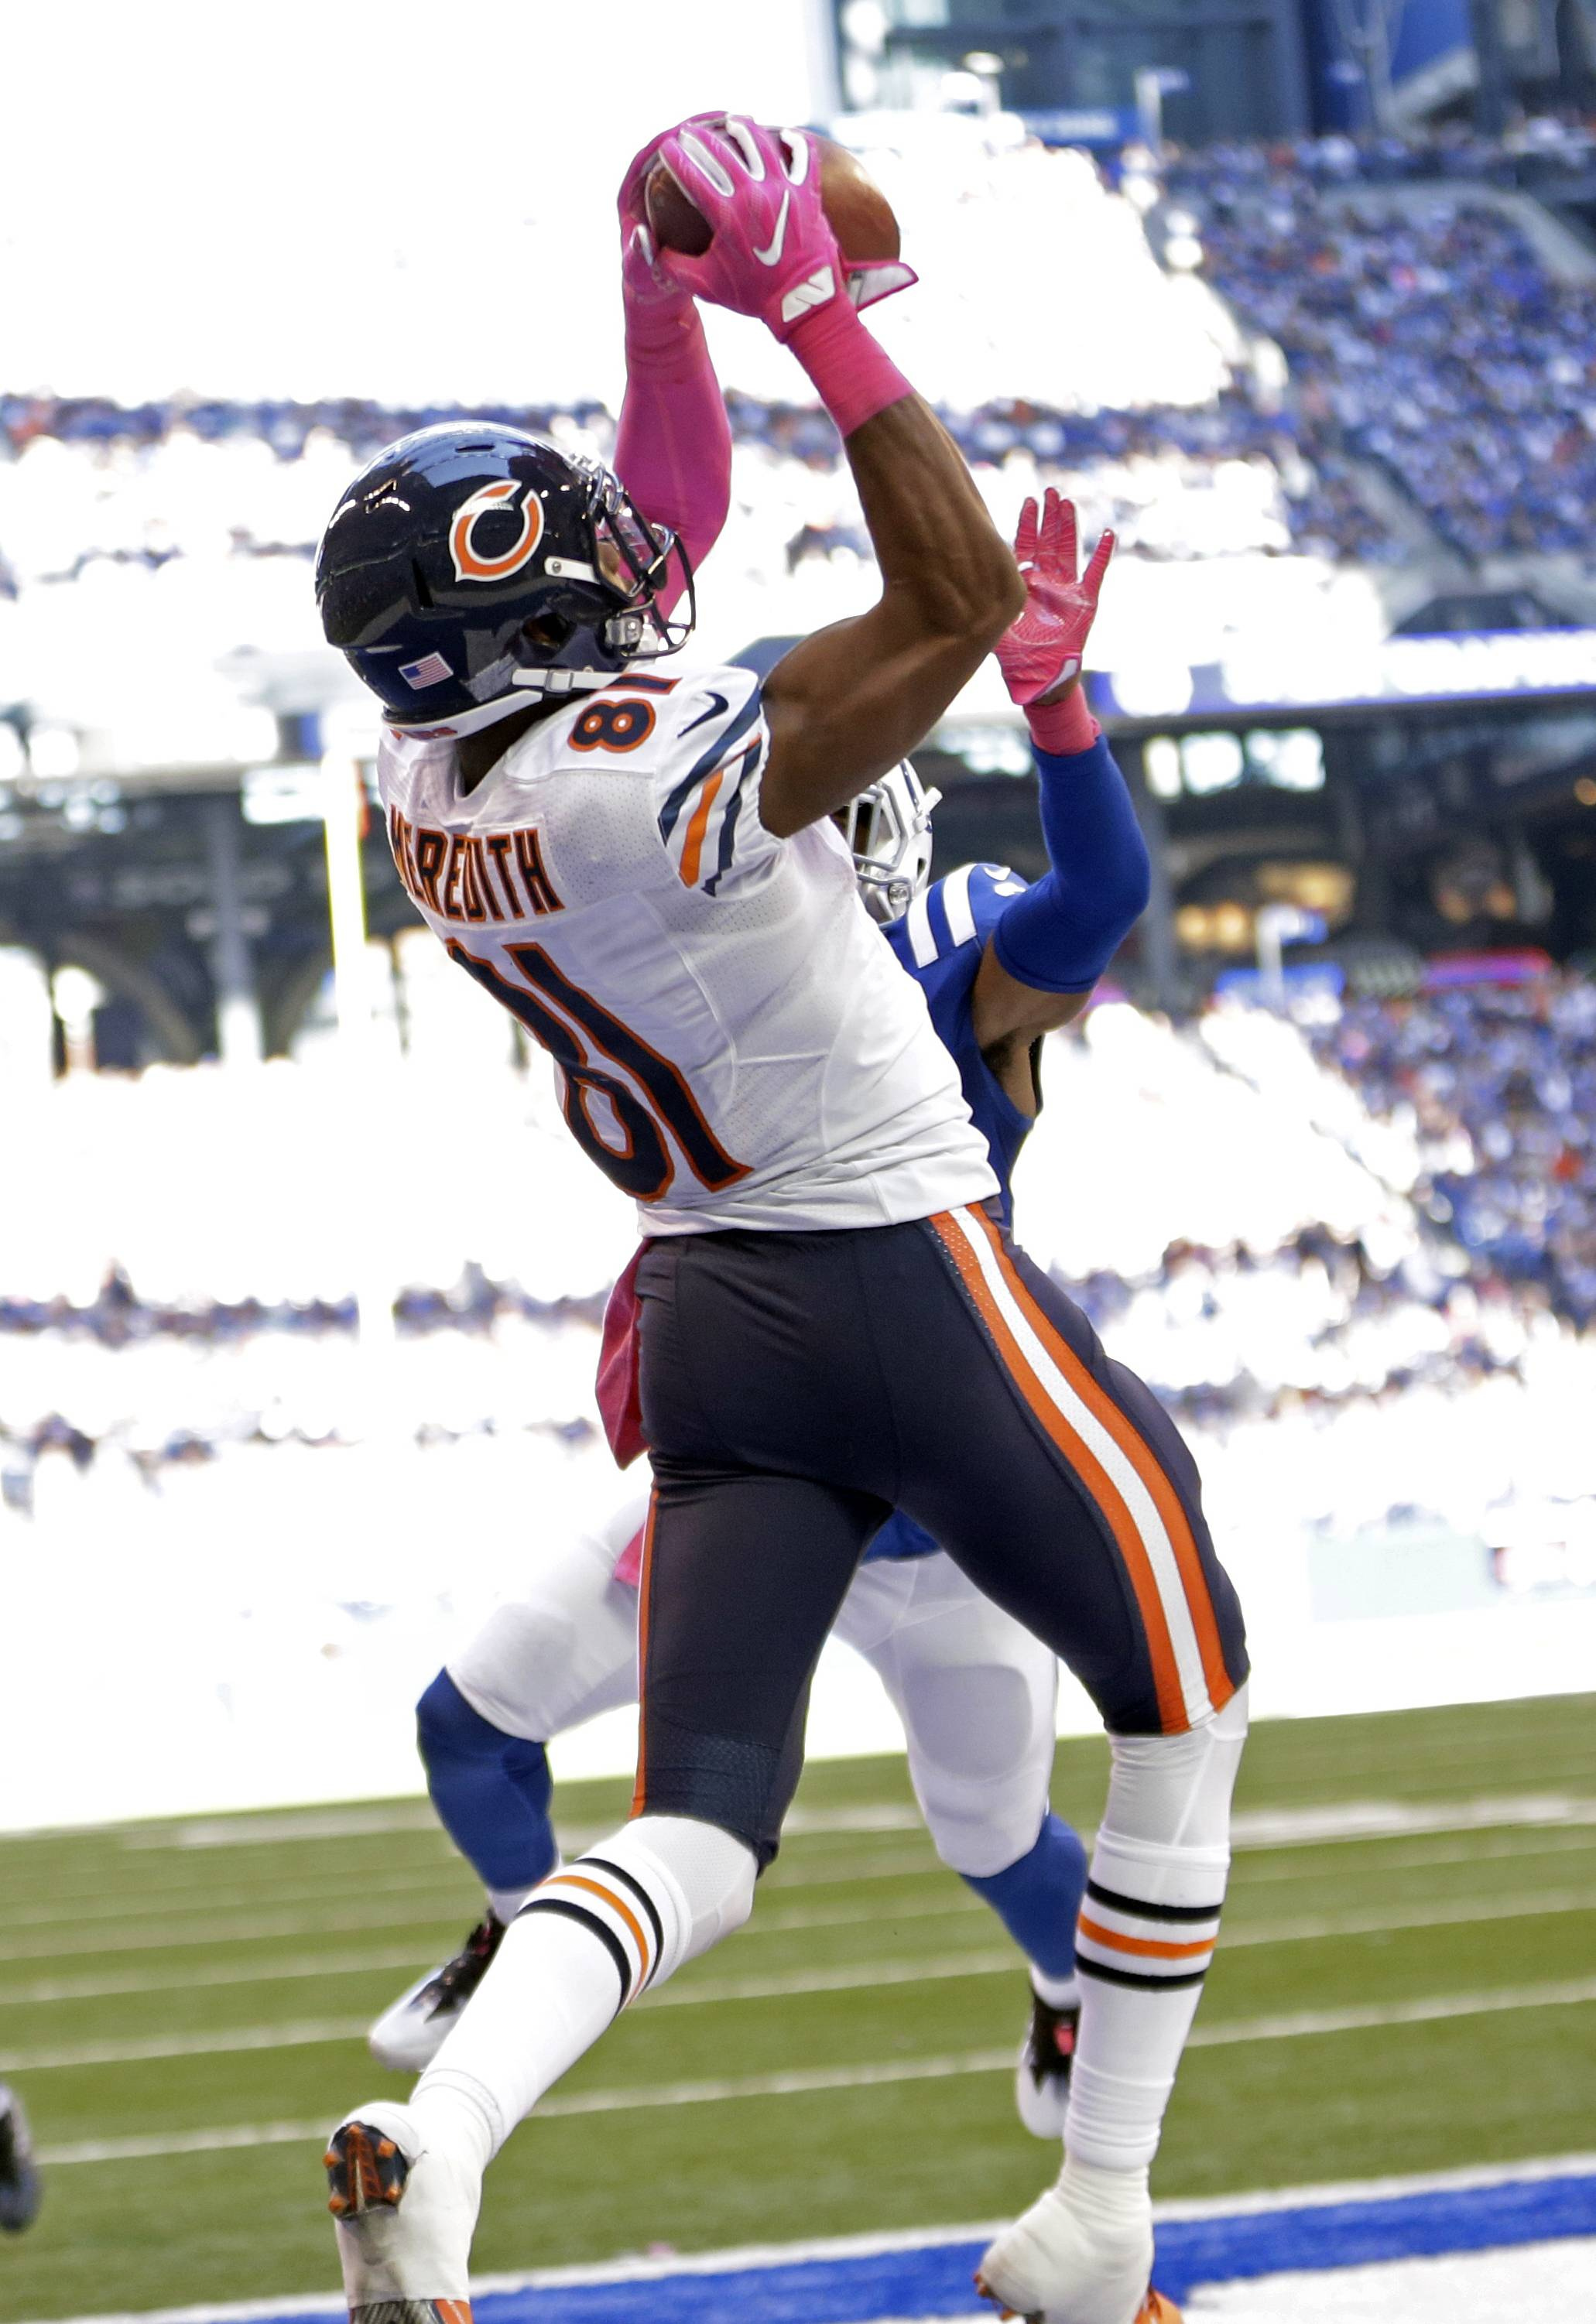 The Bears could be facing a difficult decision on wide receiver Cam Meredith, who emerged as their No. 1 receiver in 2016, even though he was inactive for the first two games.